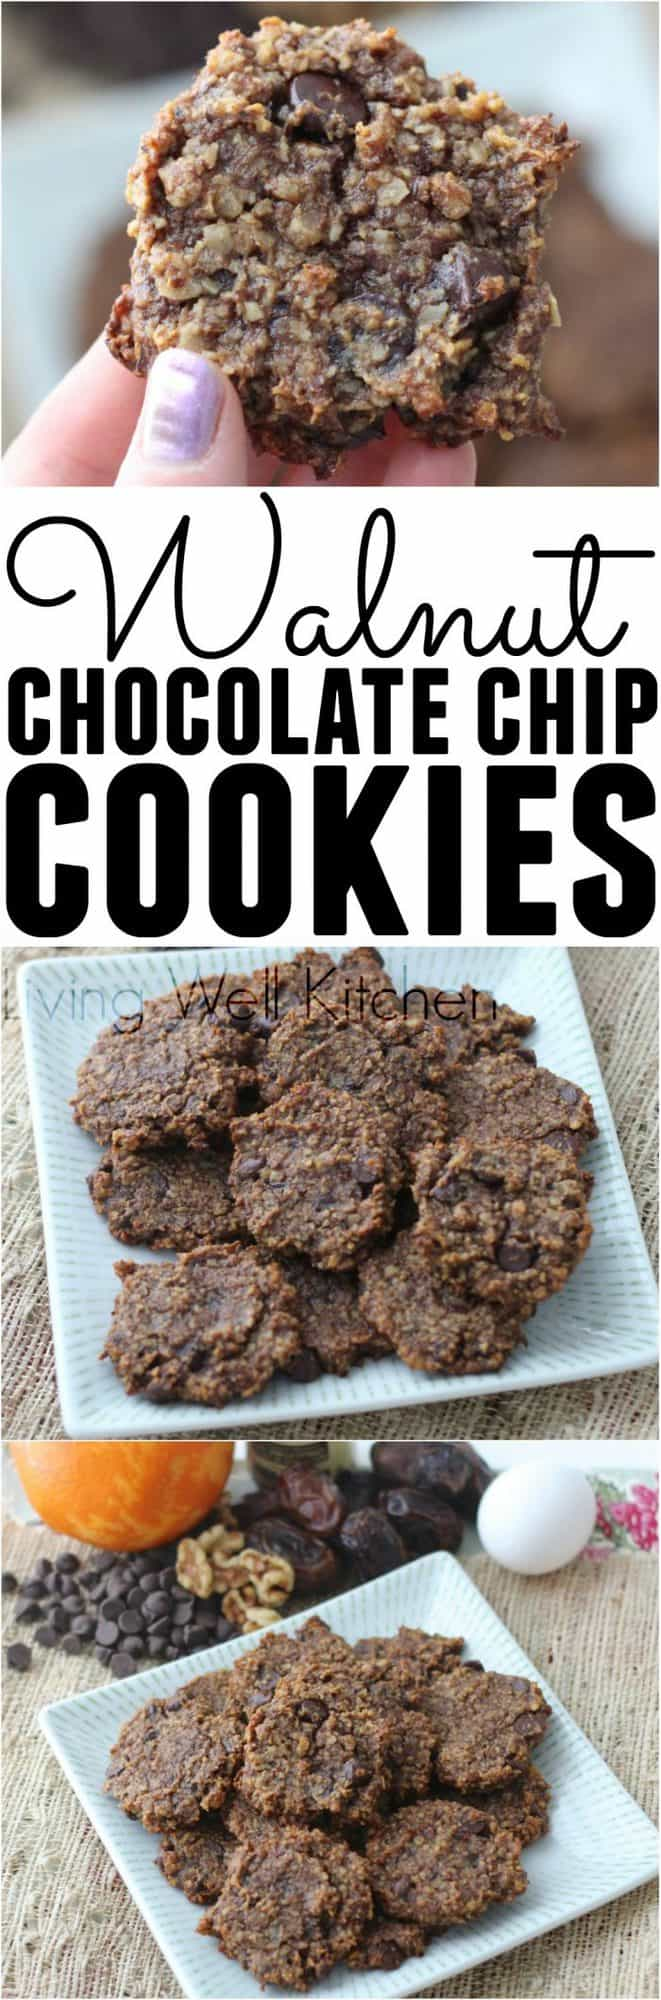 Walnut Chocolate Chip Cookies from @memeinge are no sugar added, gluten free, and butter free chocolate chip cookies. These are cookies you can feel good eating!